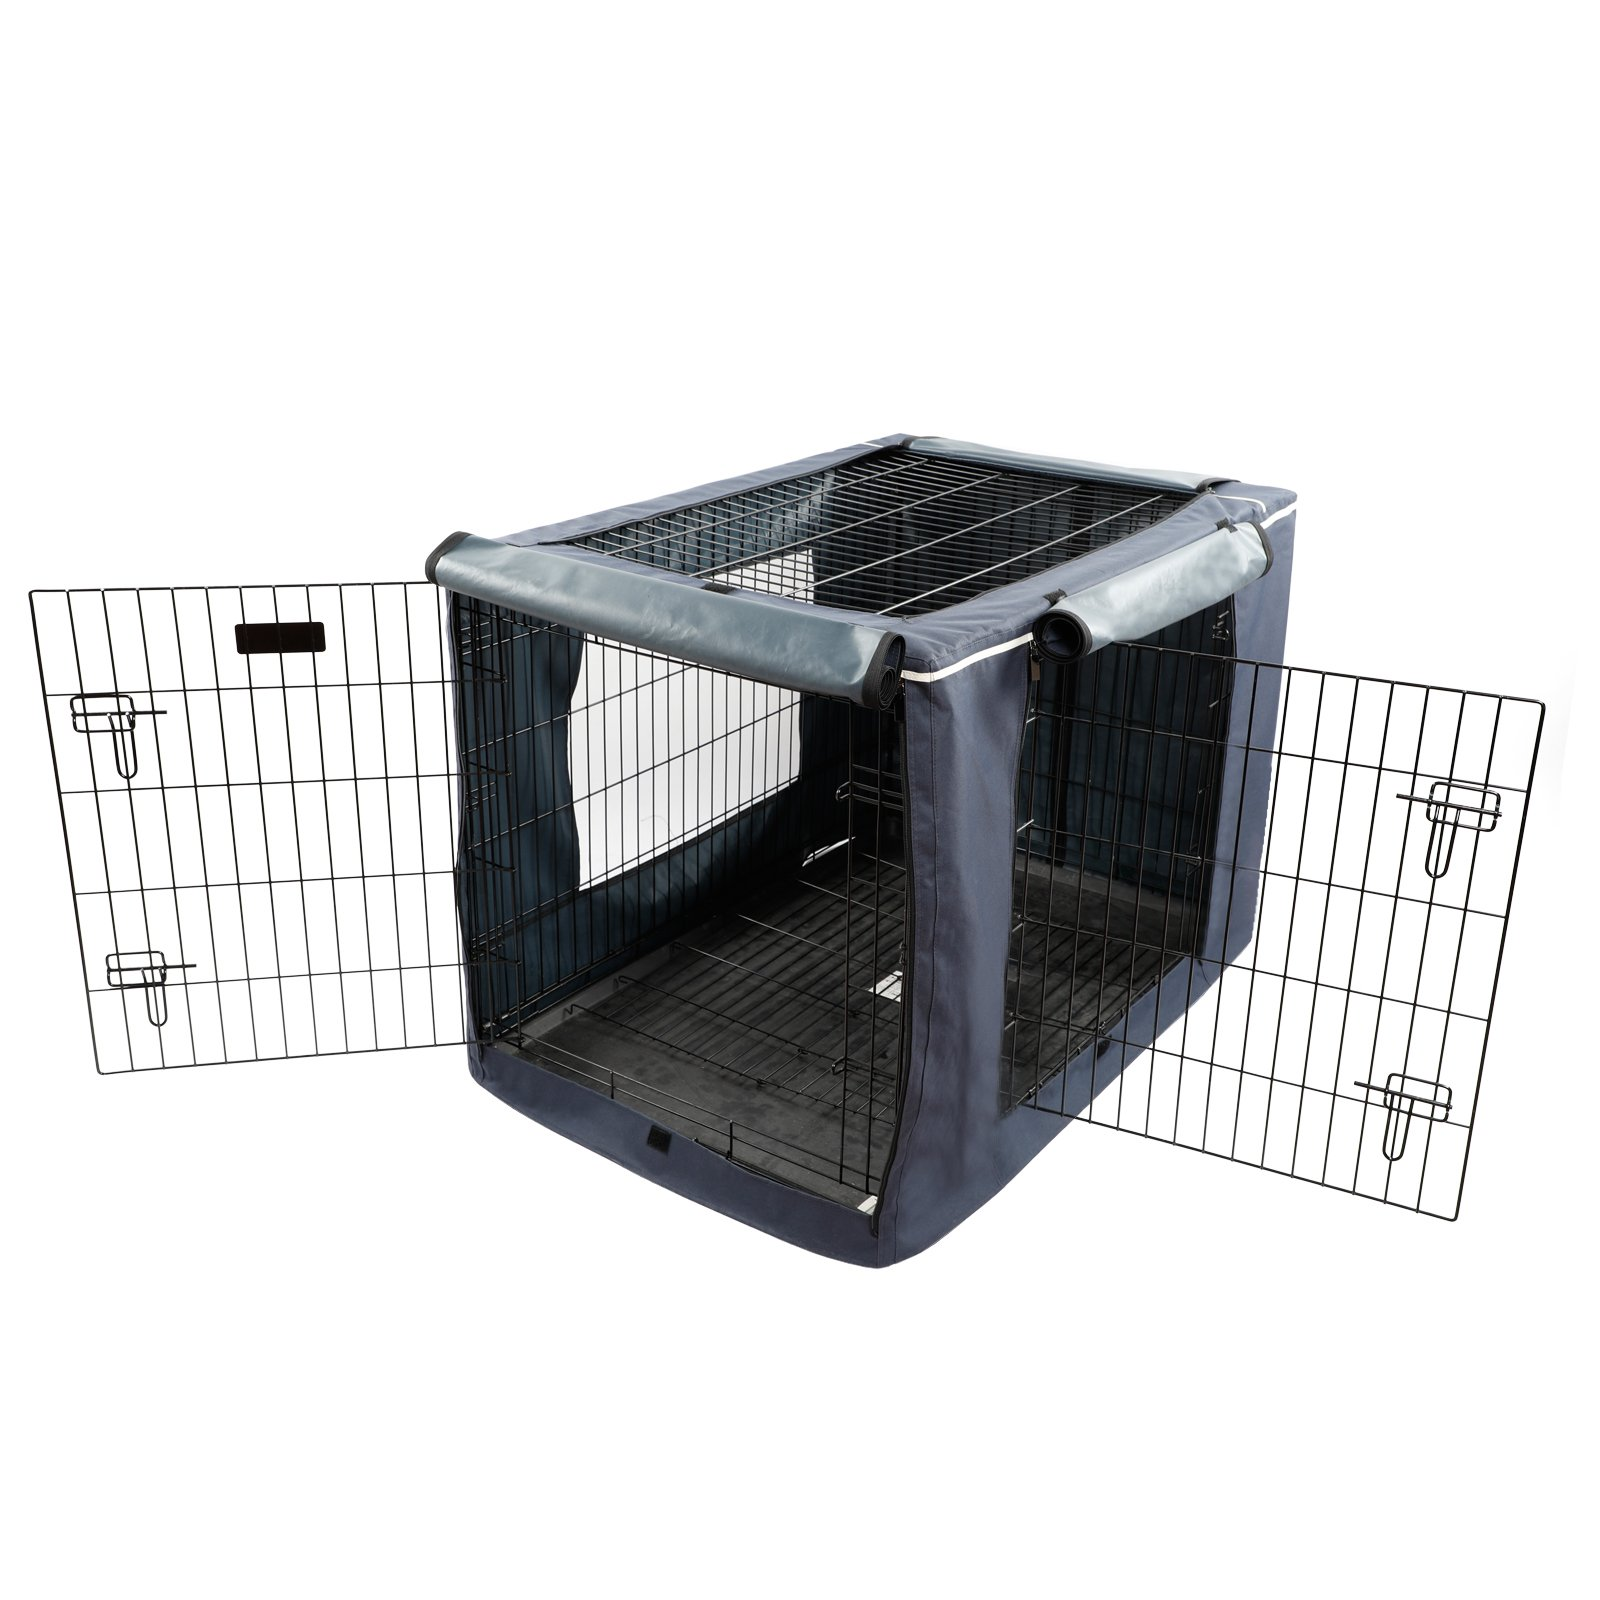 """Petsfit Oxford Cloth Pet Kennel Cover for Wire Dog Crates 42""""L x 28""""W x 30""""H, With Three-Side and Top Windows, Back Zipper, Dark Blue by Petsfit (Image #4)"""